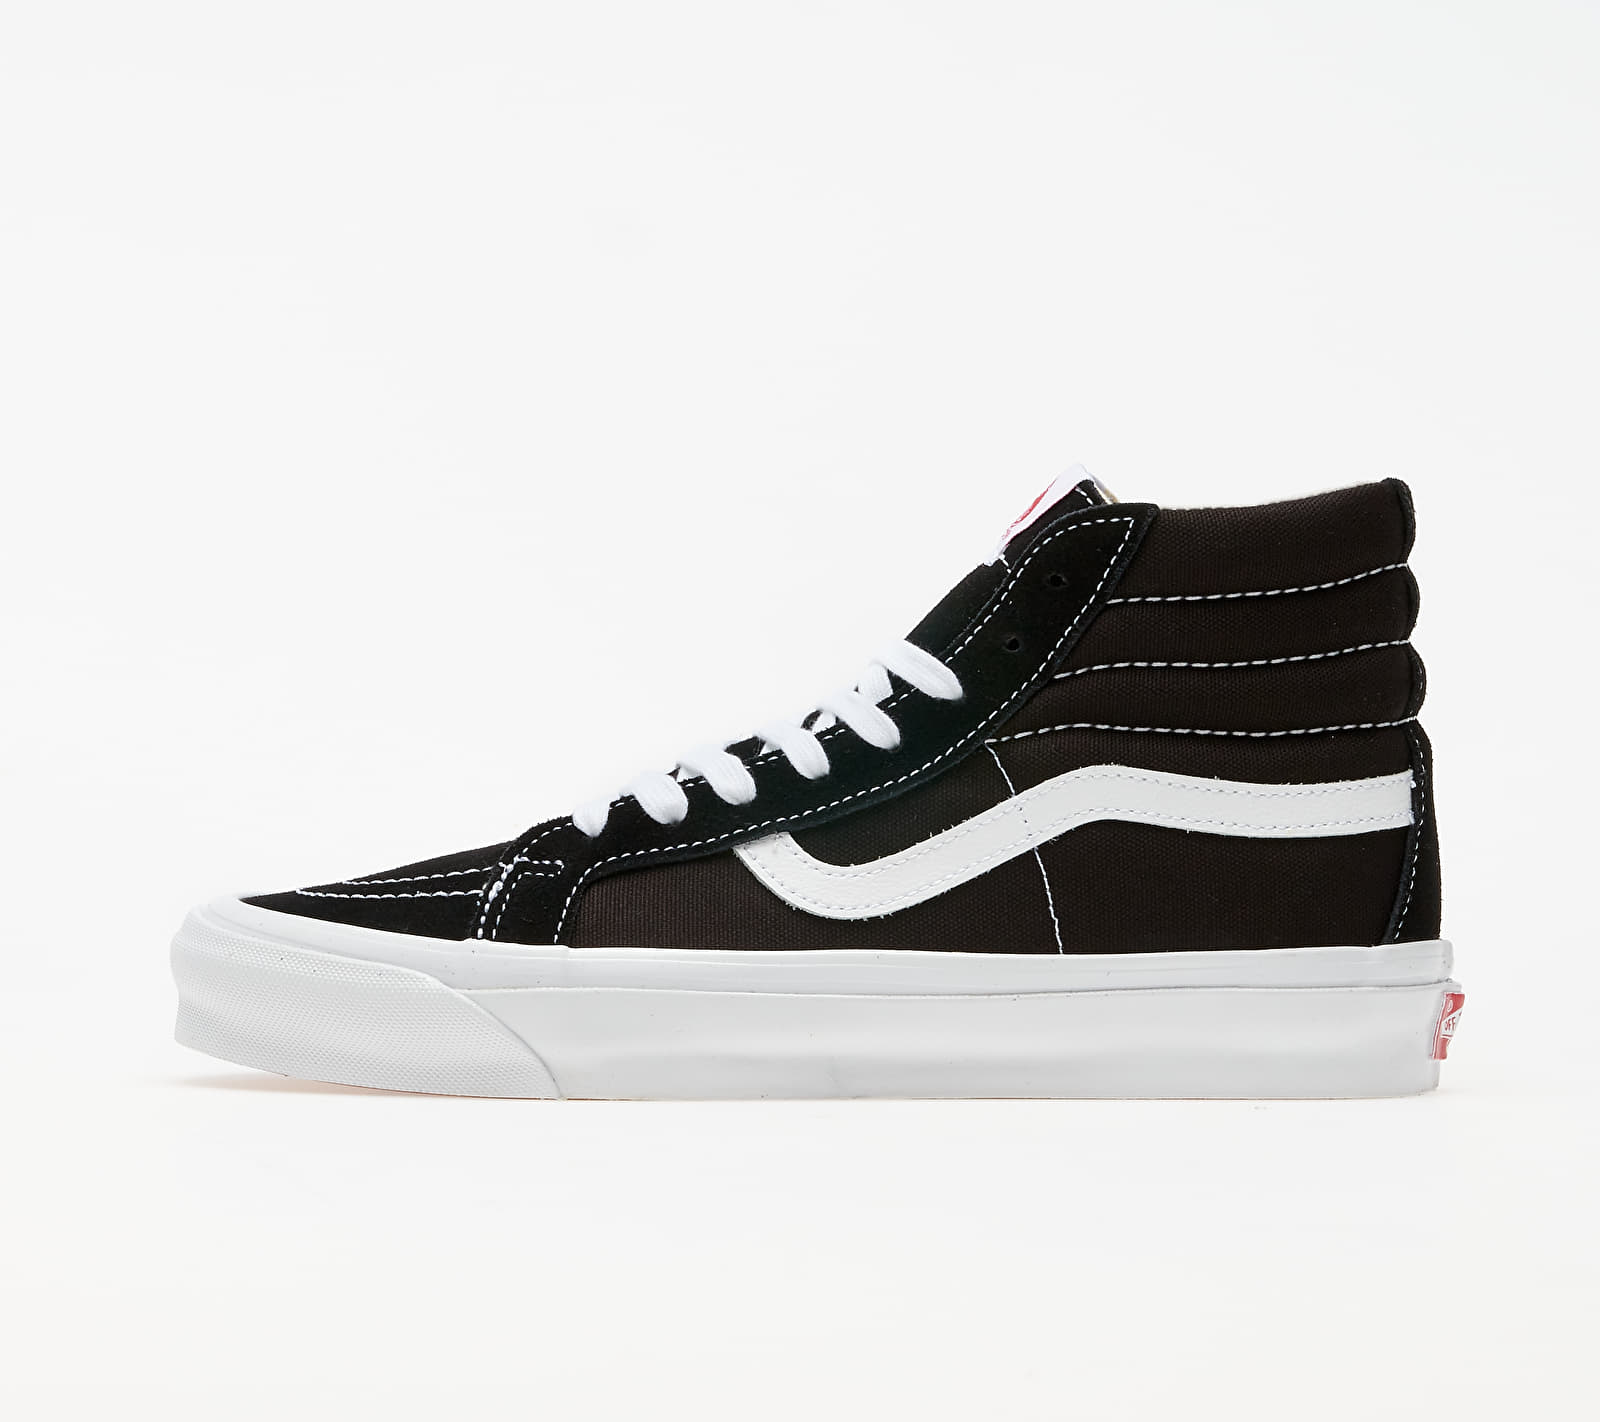 Vans Vault OG Sk8-Hi LX (Suede/ Canvas) Black/ True White EUR 44.5